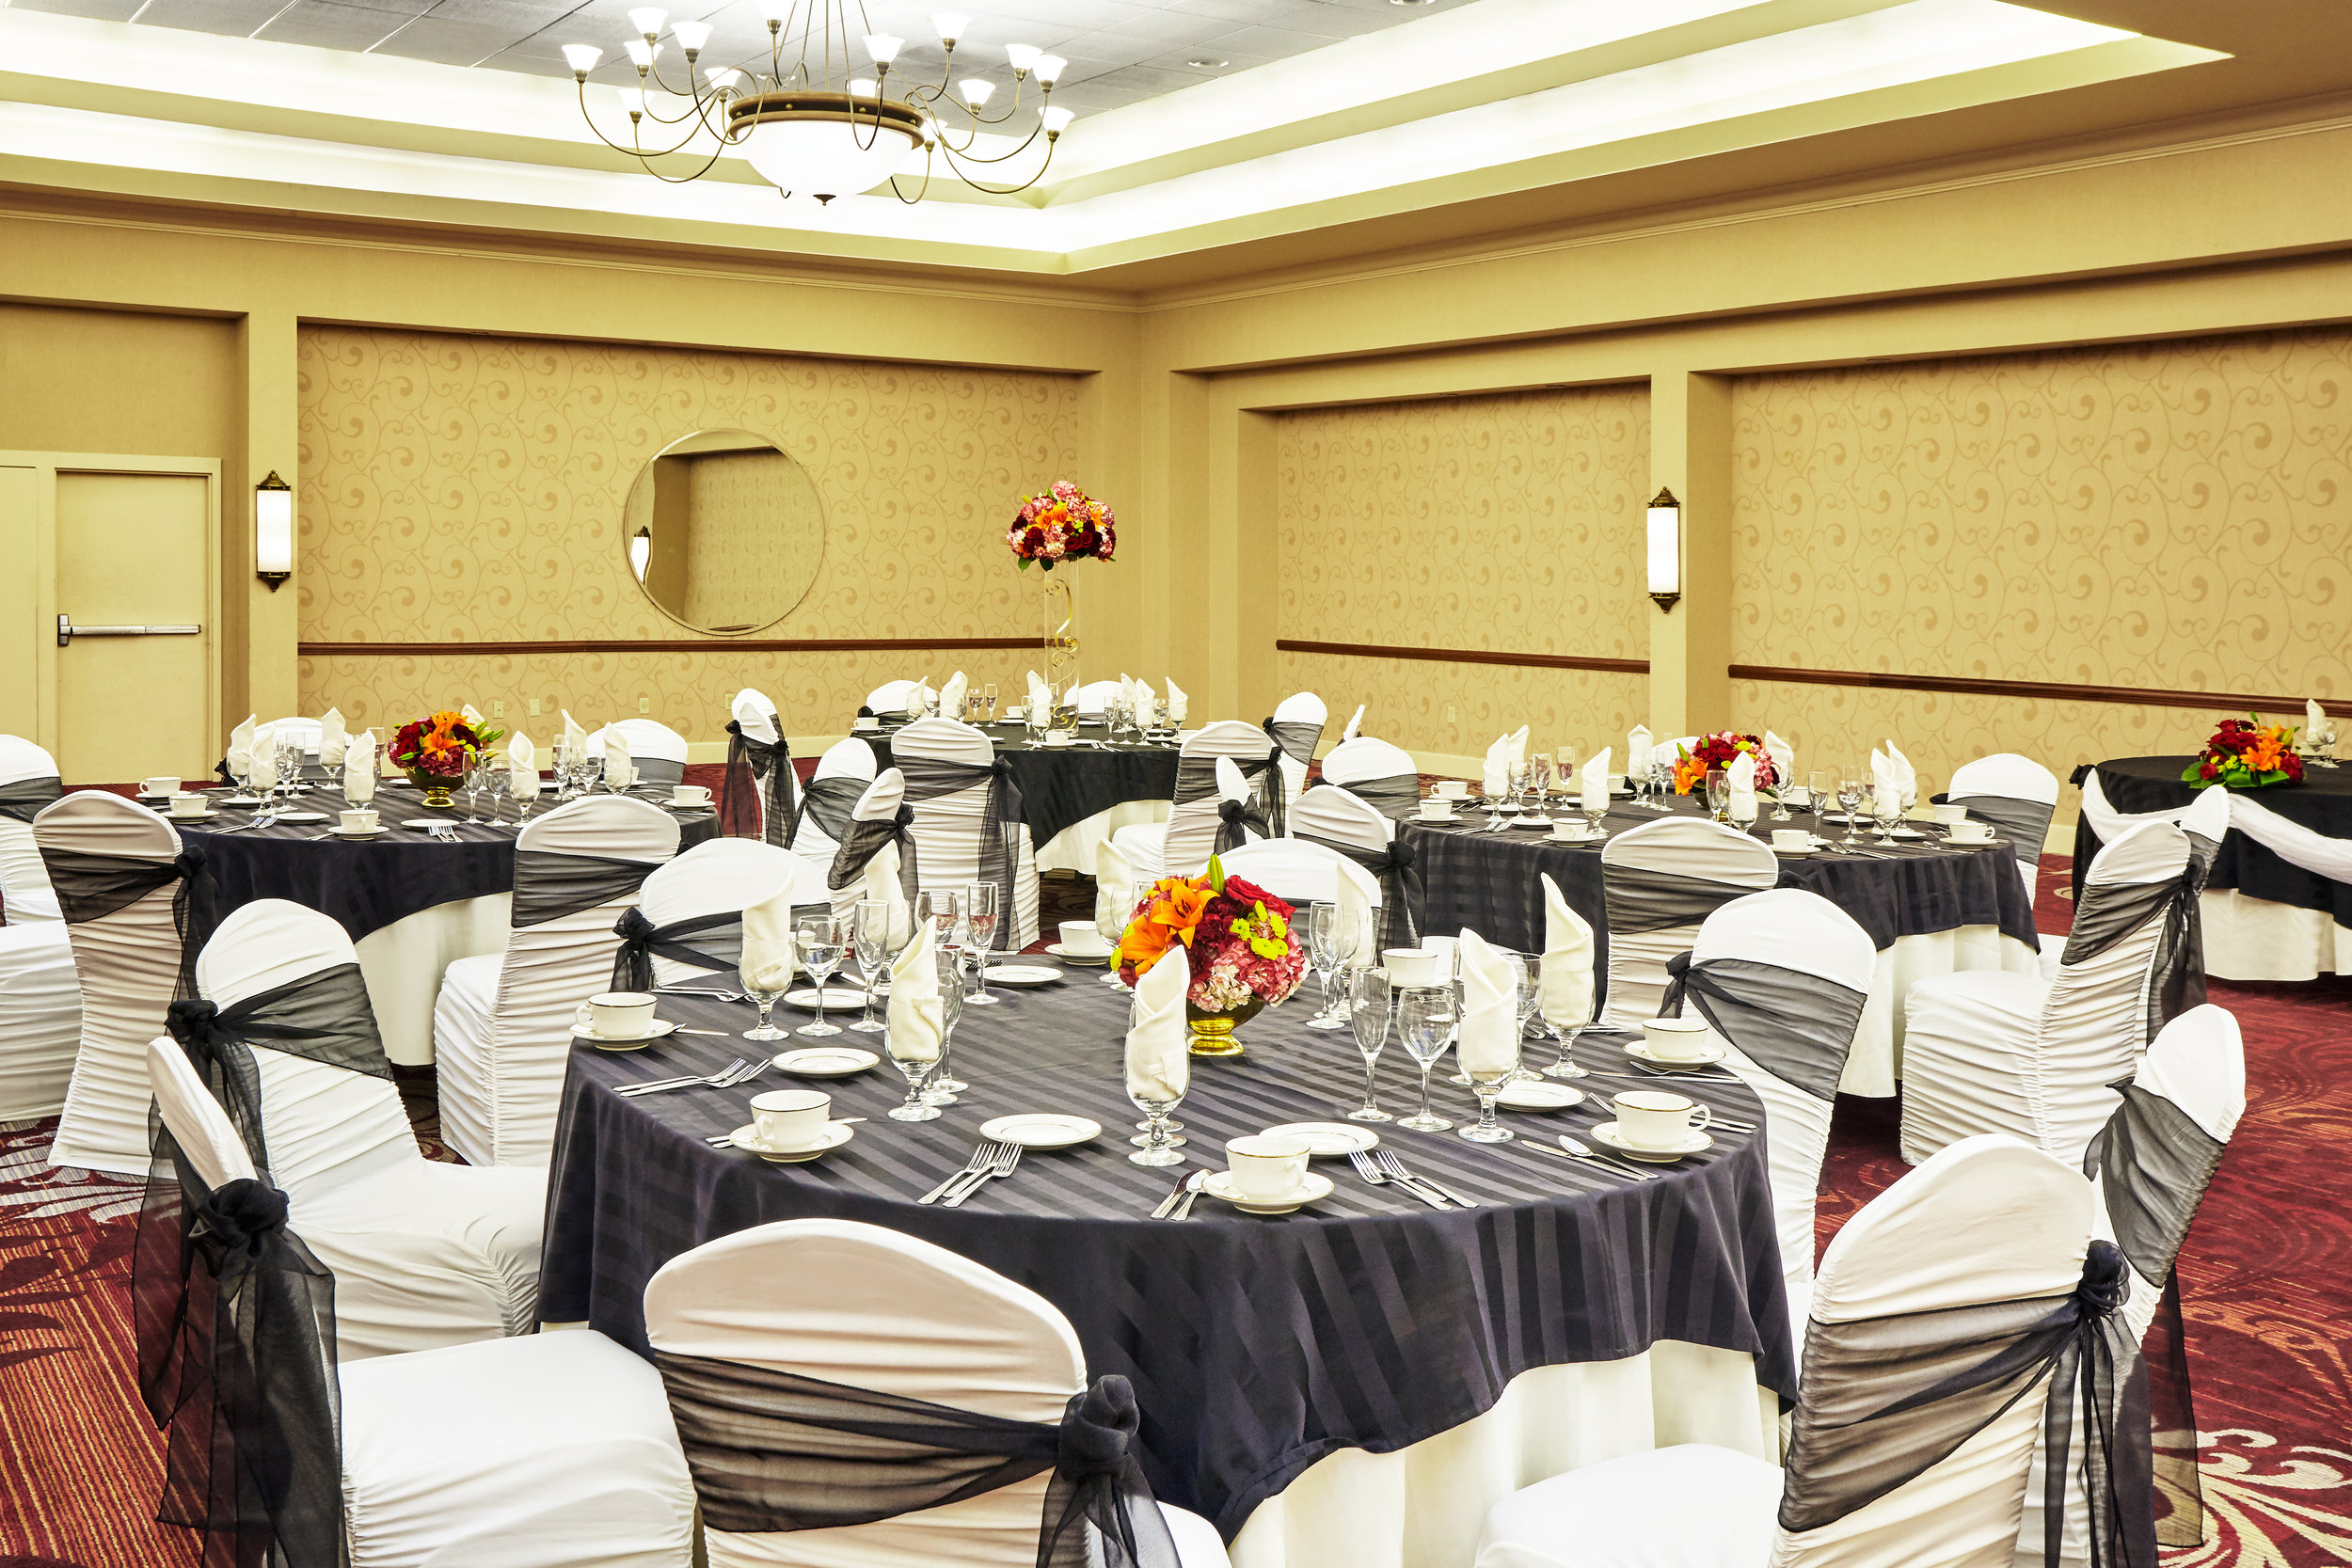 HOLIDAY INN CONFERENCE CENTER | ALLENTOWN, PA